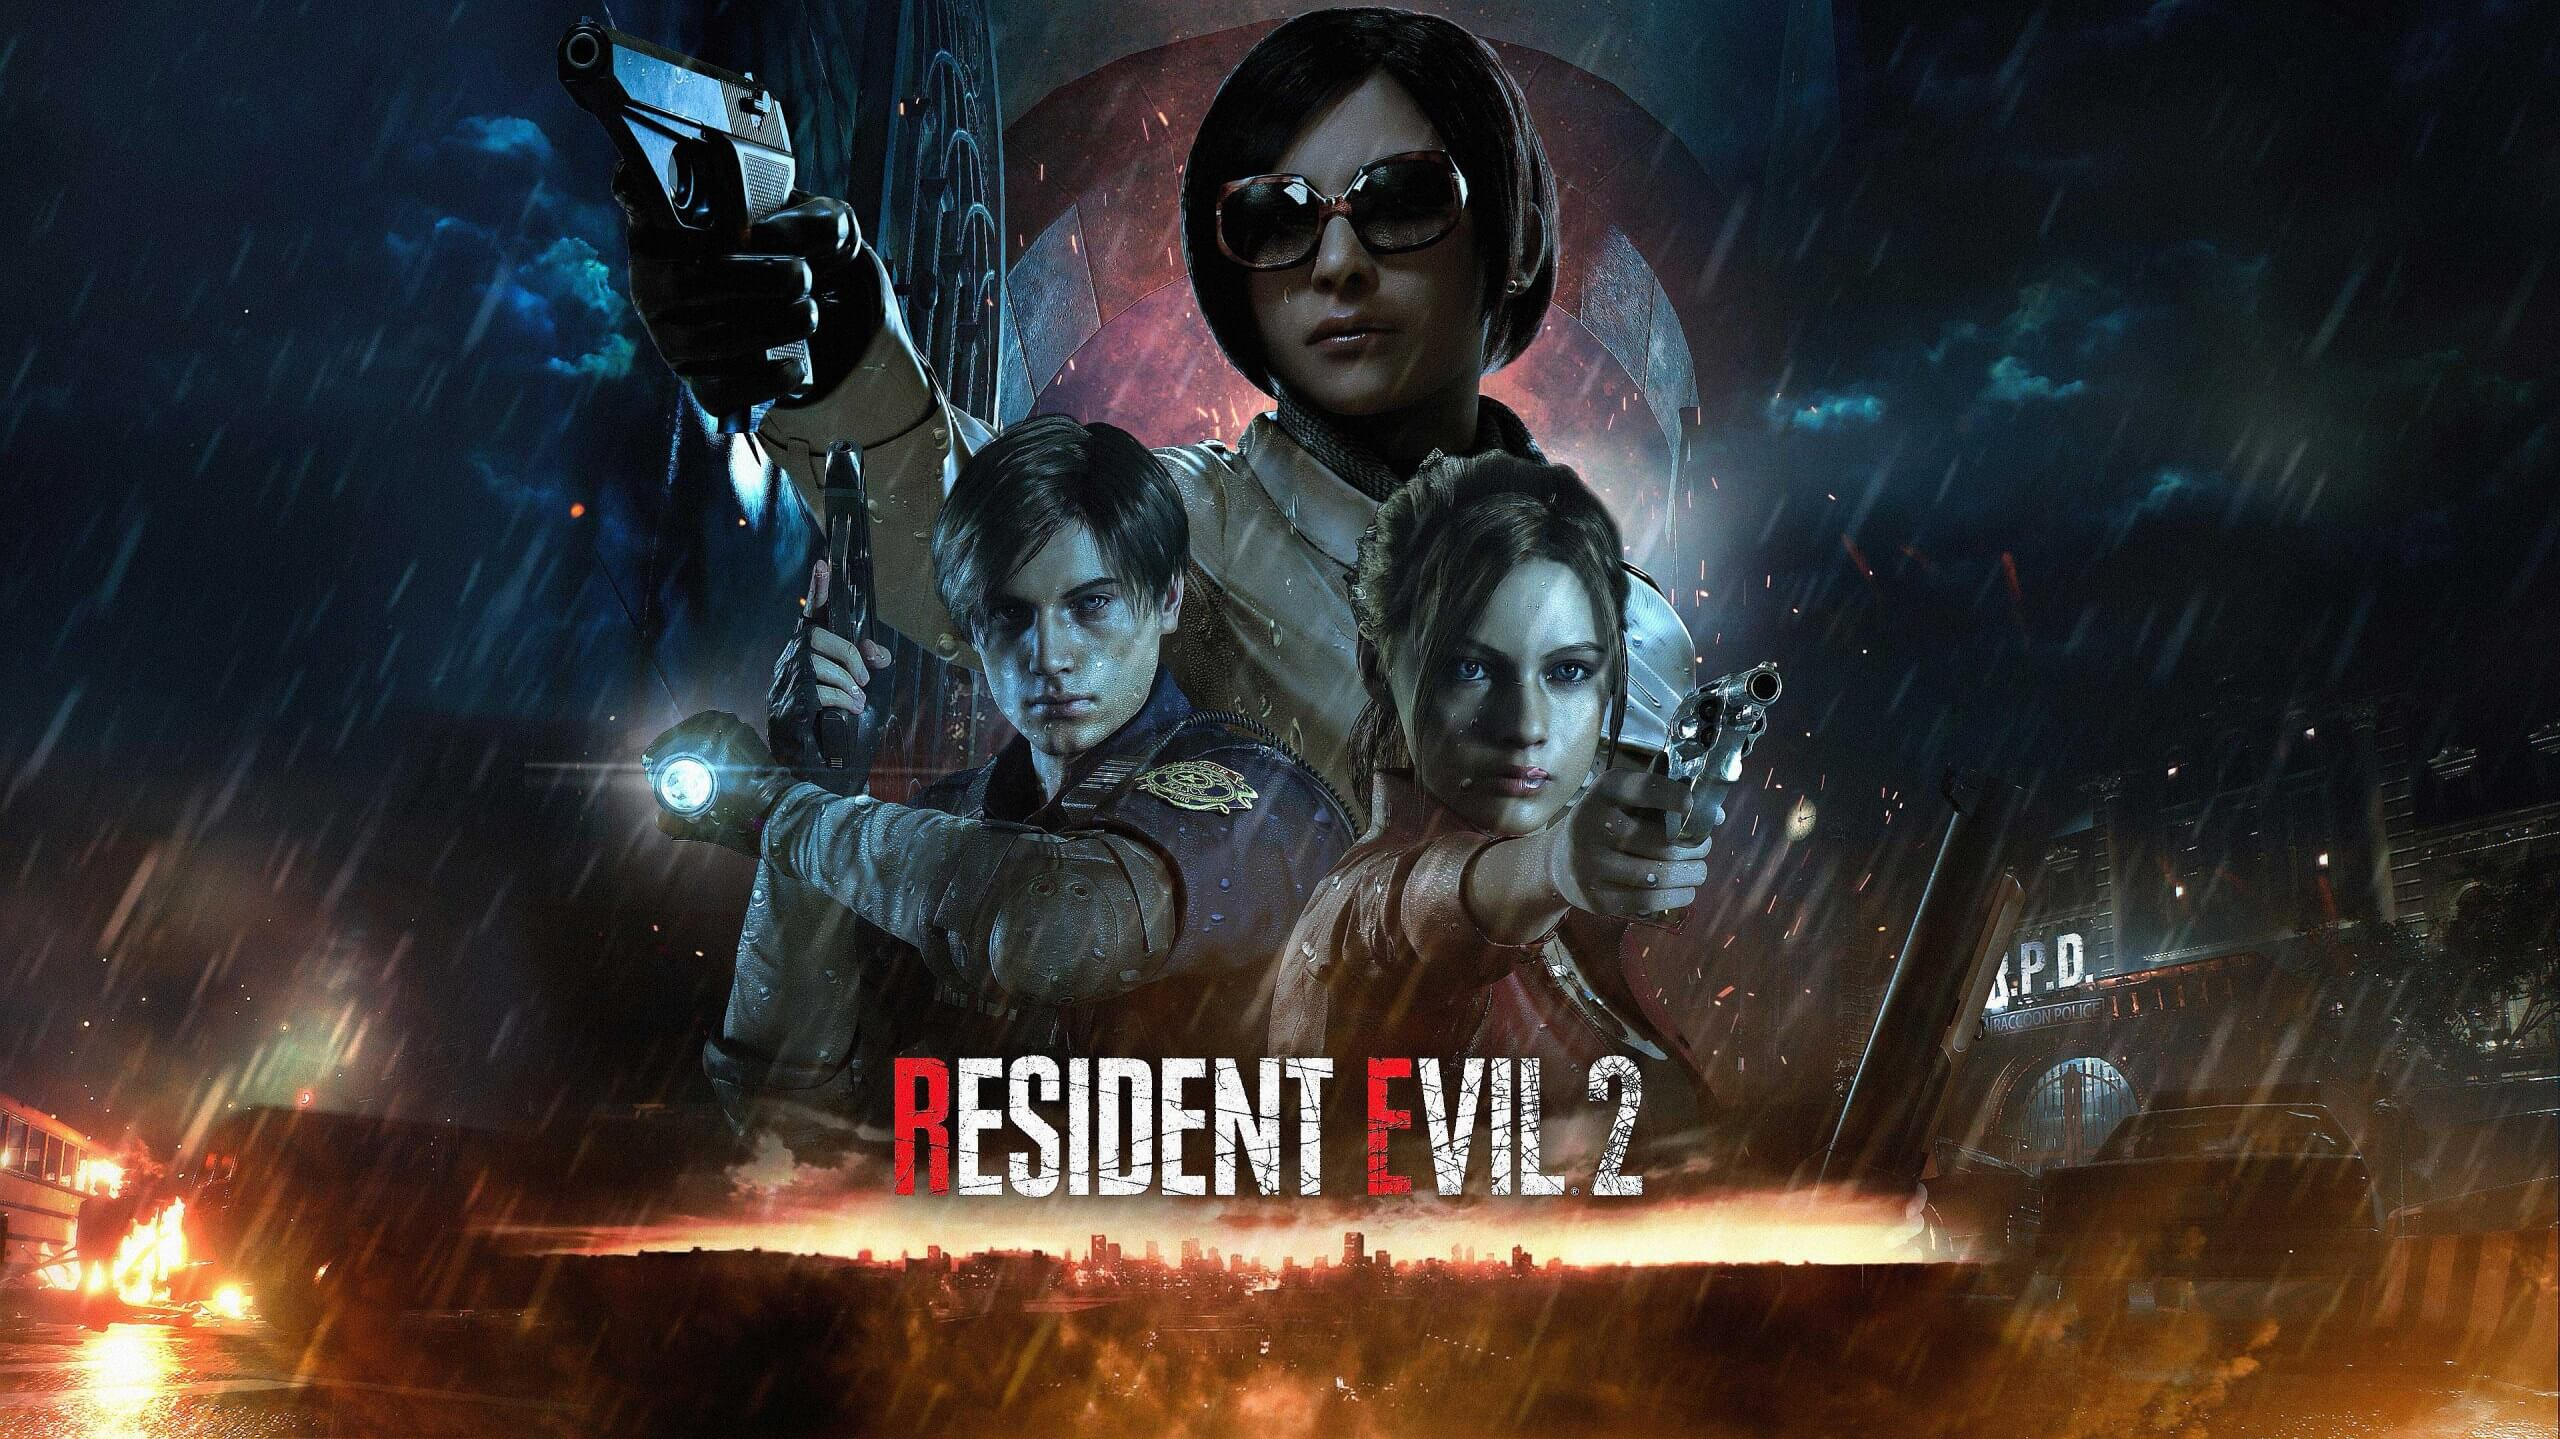 Resident Evil 2 review round-up: Capcom's classic lives up to the hype say critics - TechSpot